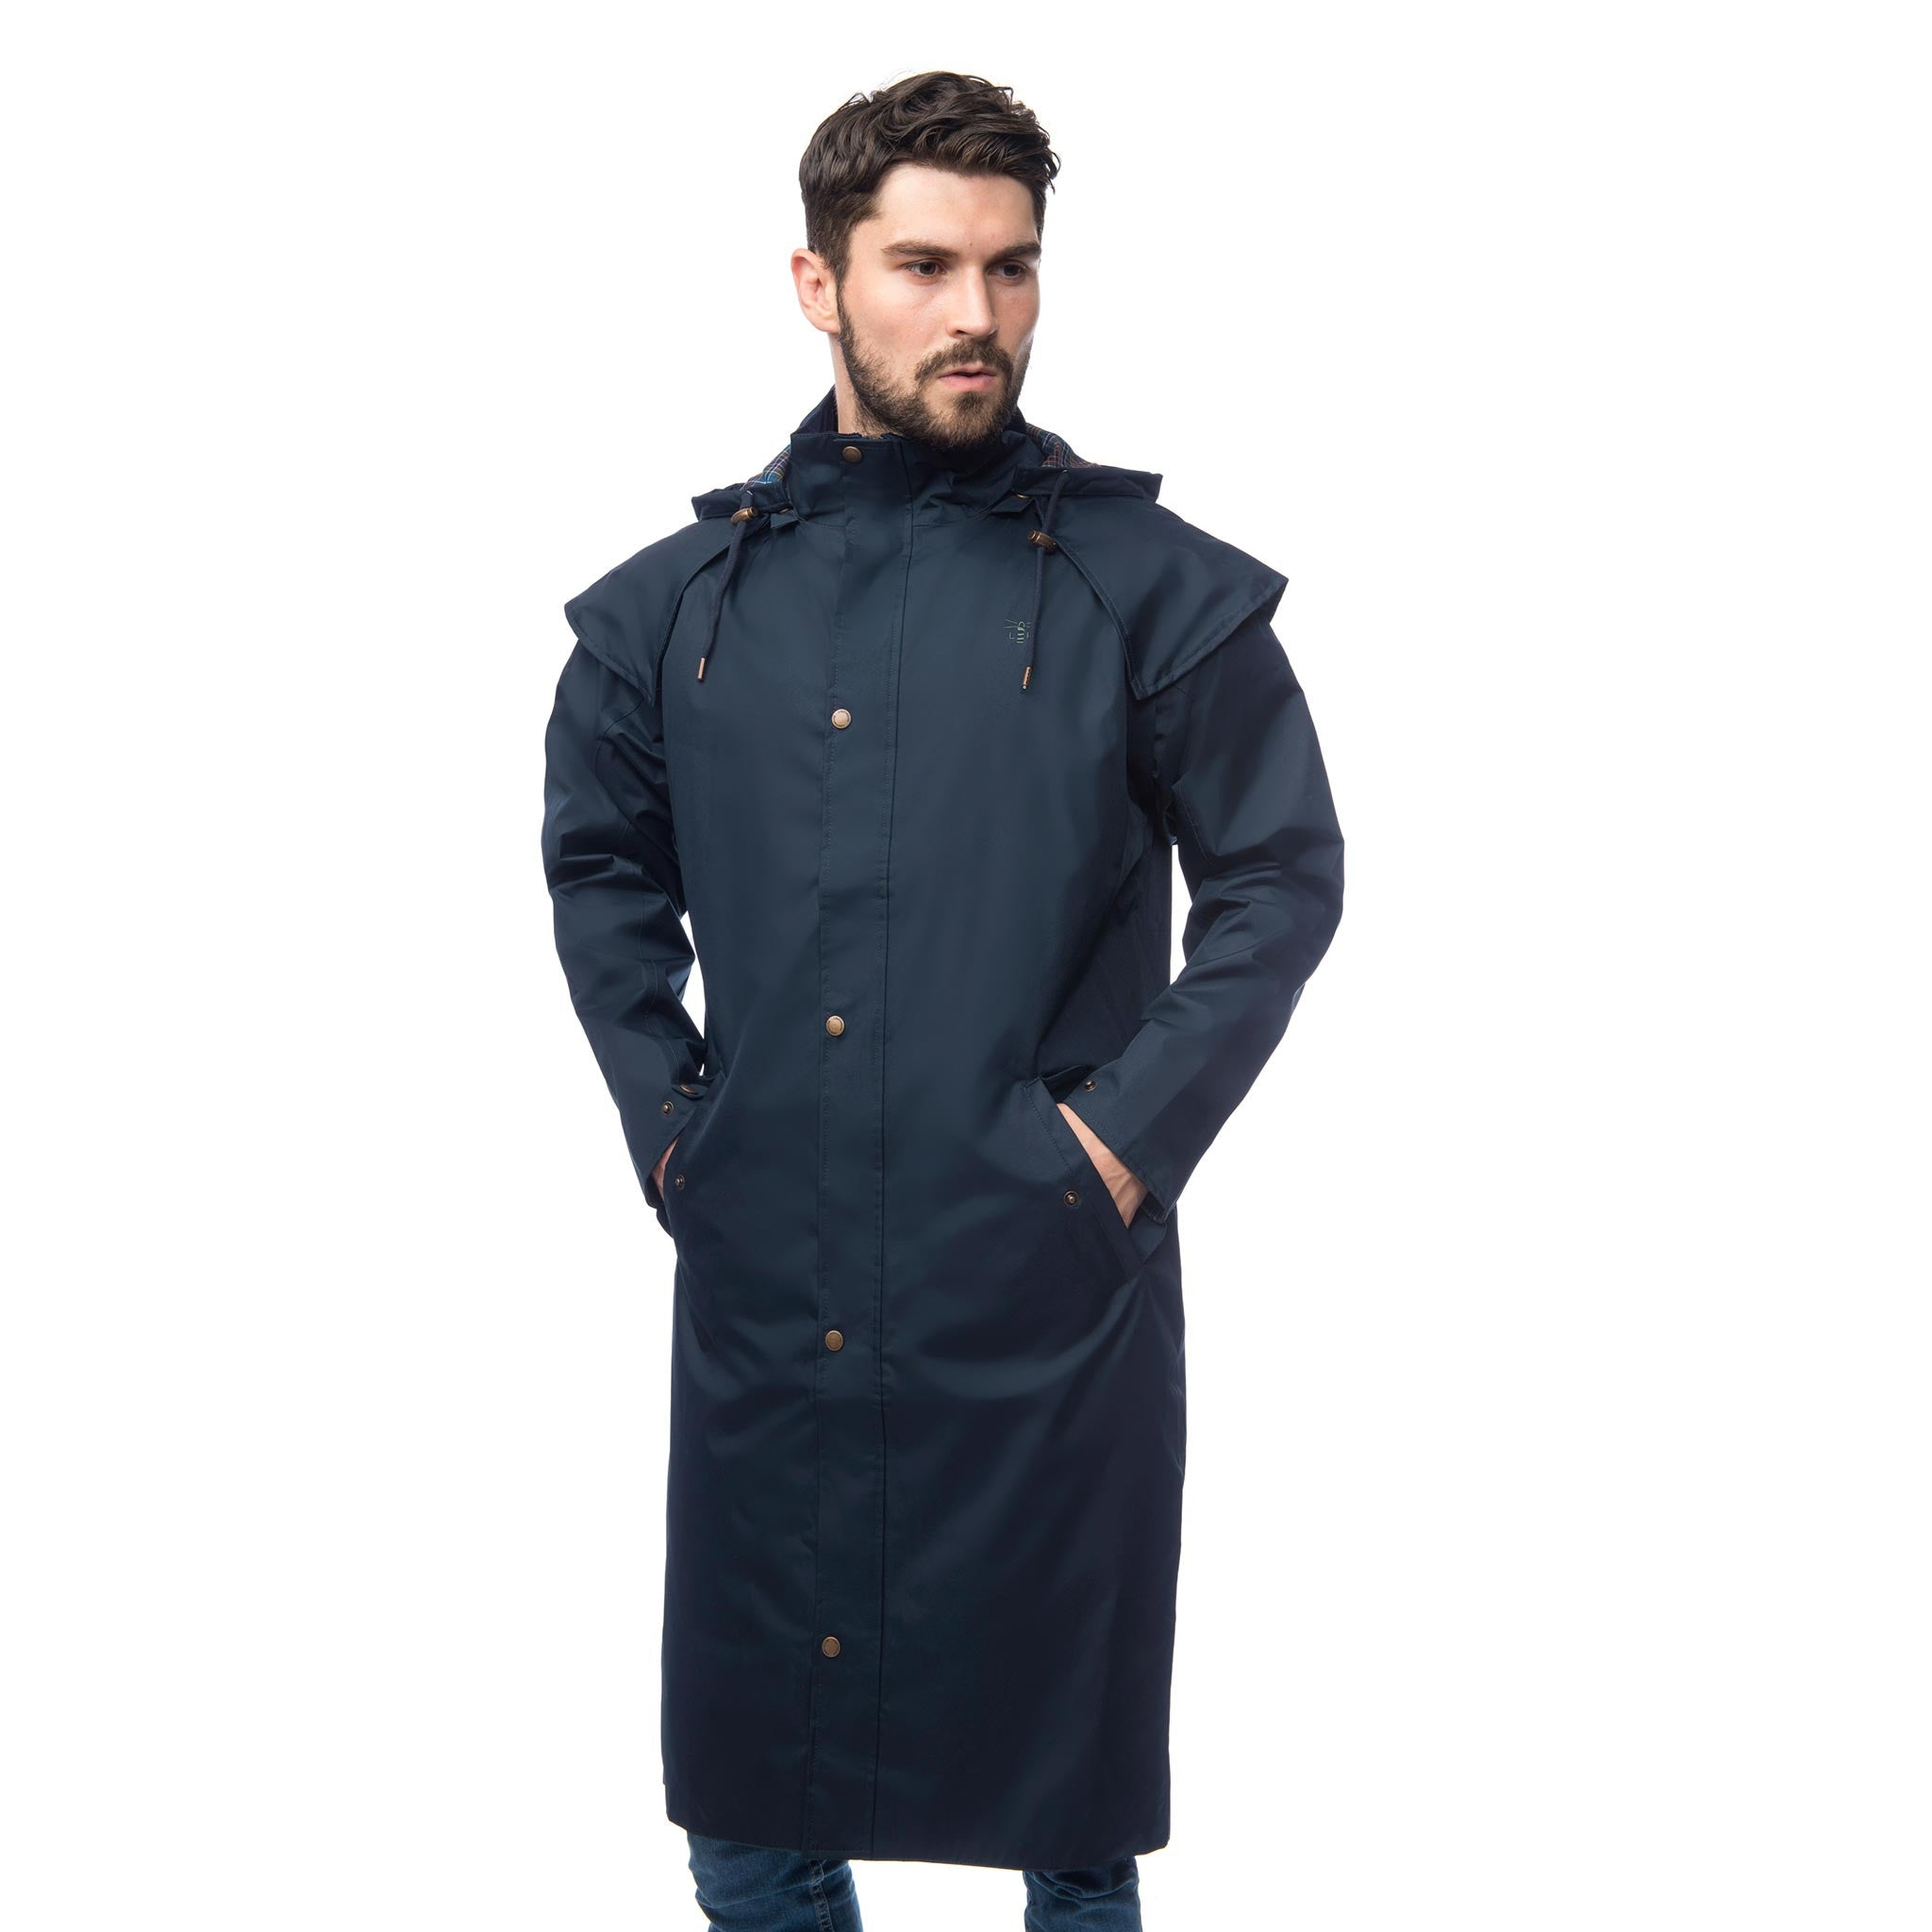 Lighthouse Mens Stockman Full Length Waterproof Rain Coat in Navy.  Zipped and buttoned. Hood down.